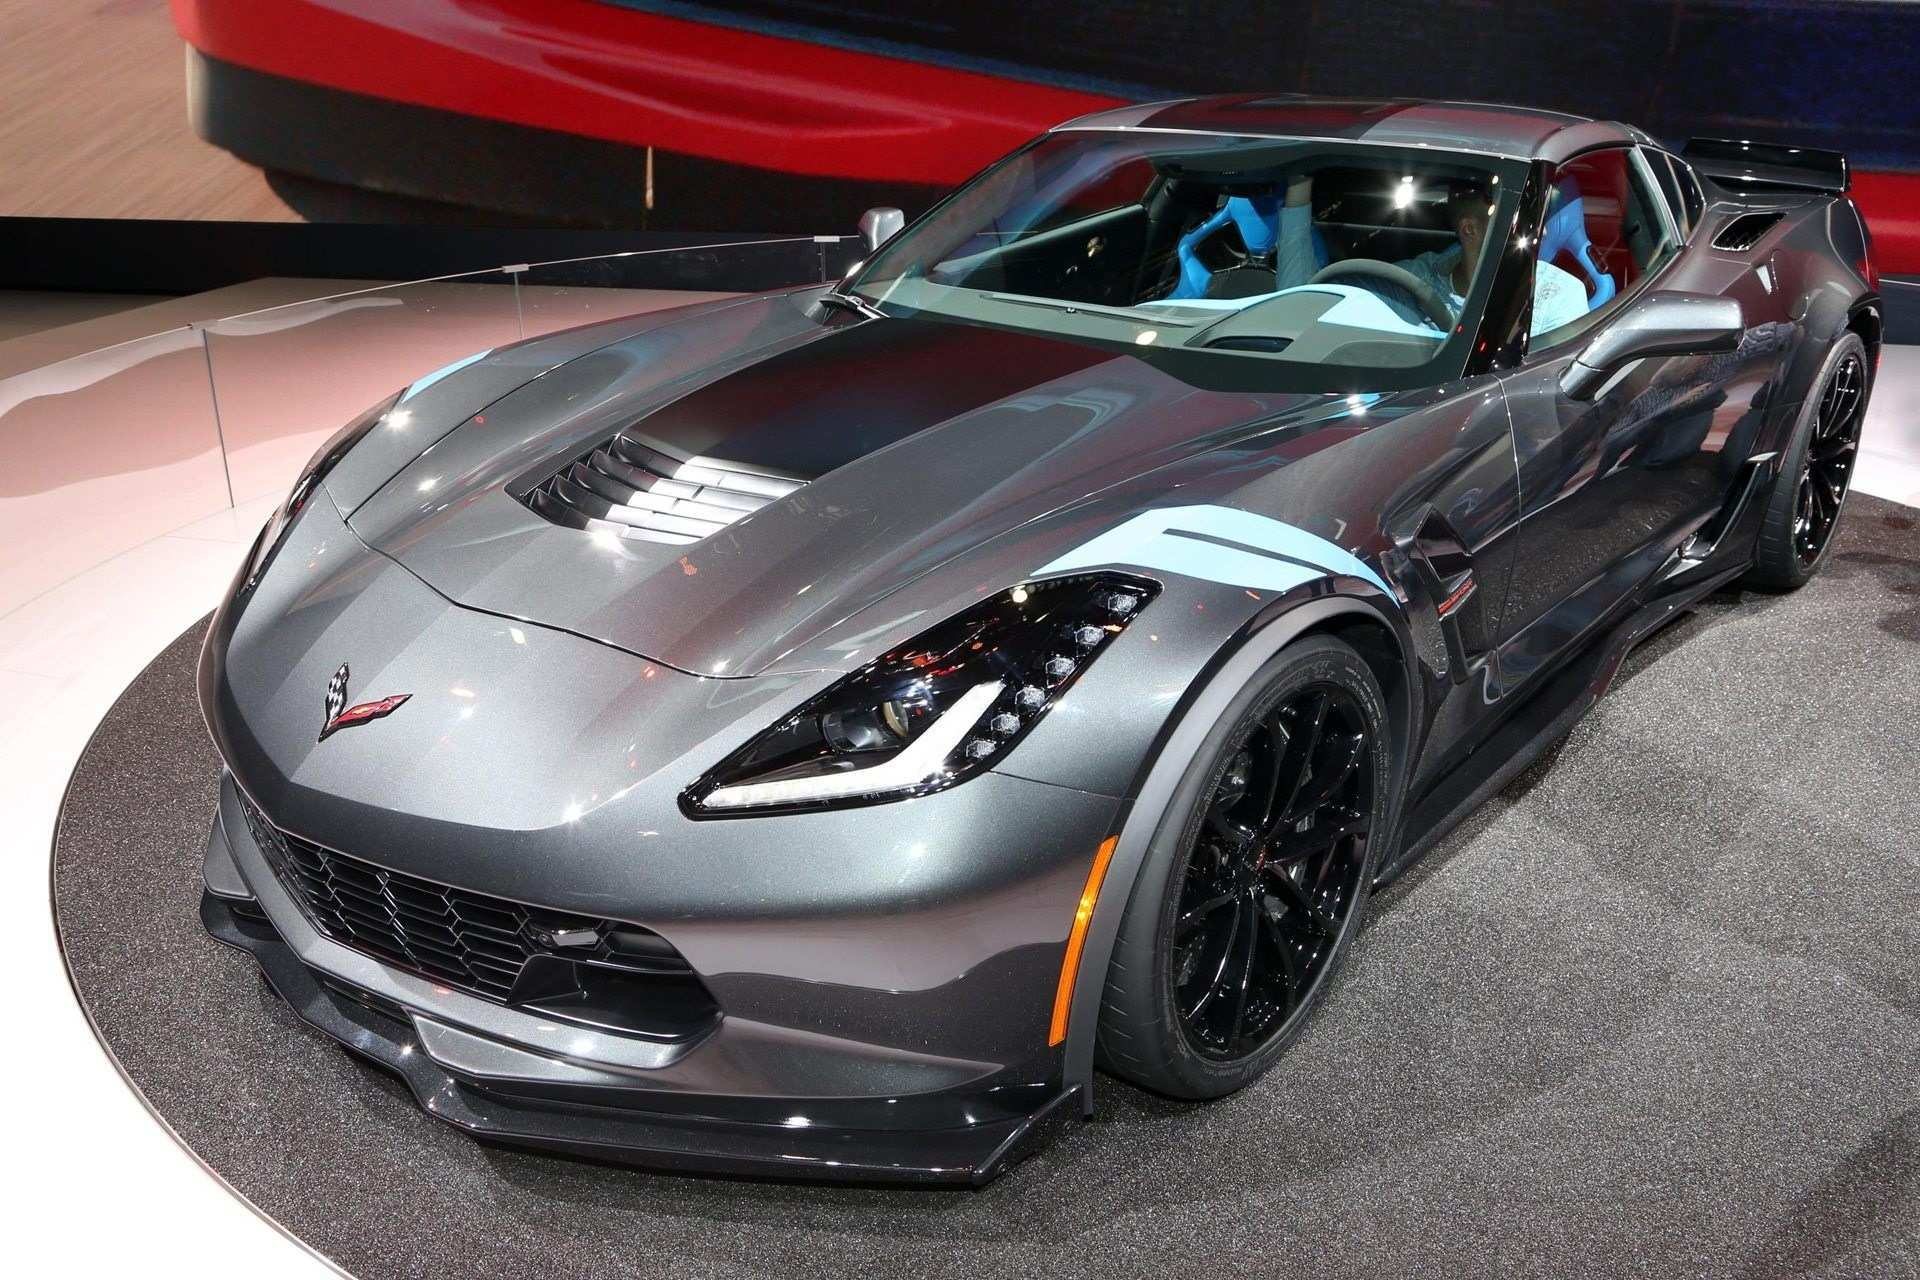 18 New 2019 Corvette Z07 Photos